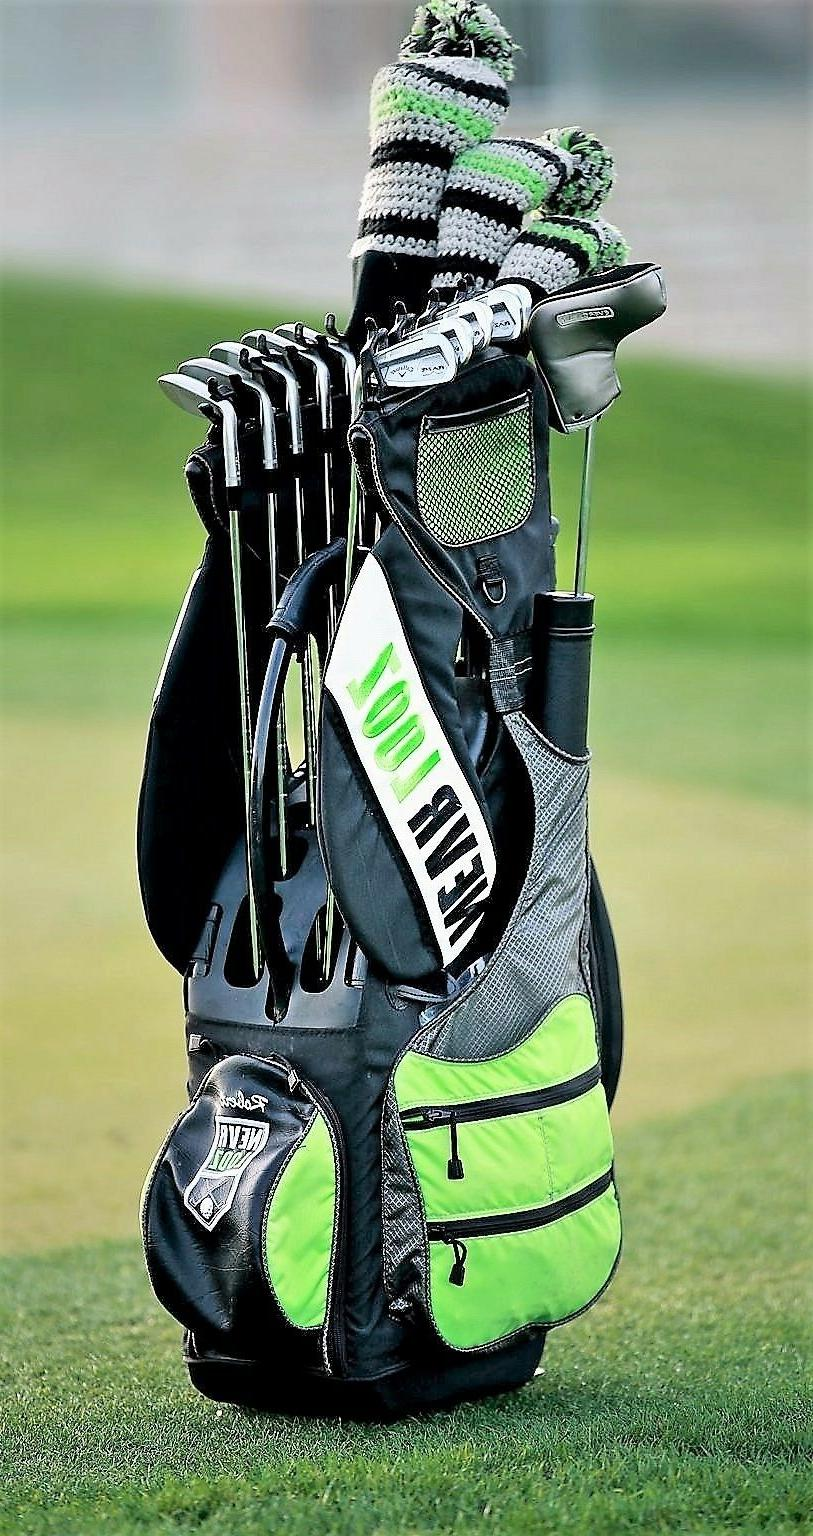 NEVR Golf your clubs organize your game